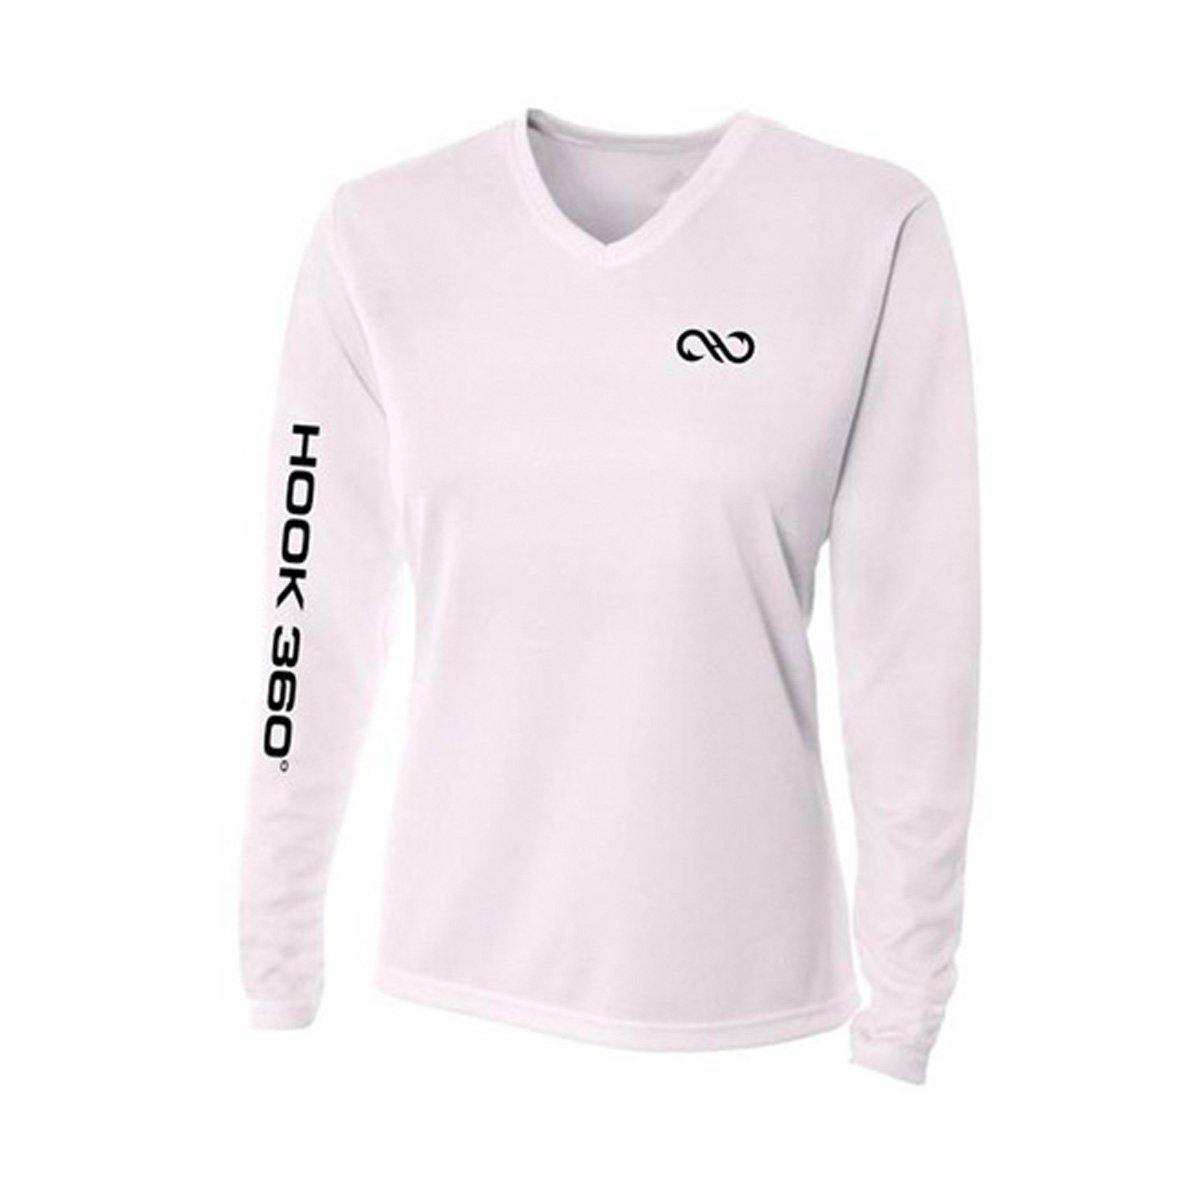 Women's Tournament Performance Shirt (4350189338696)